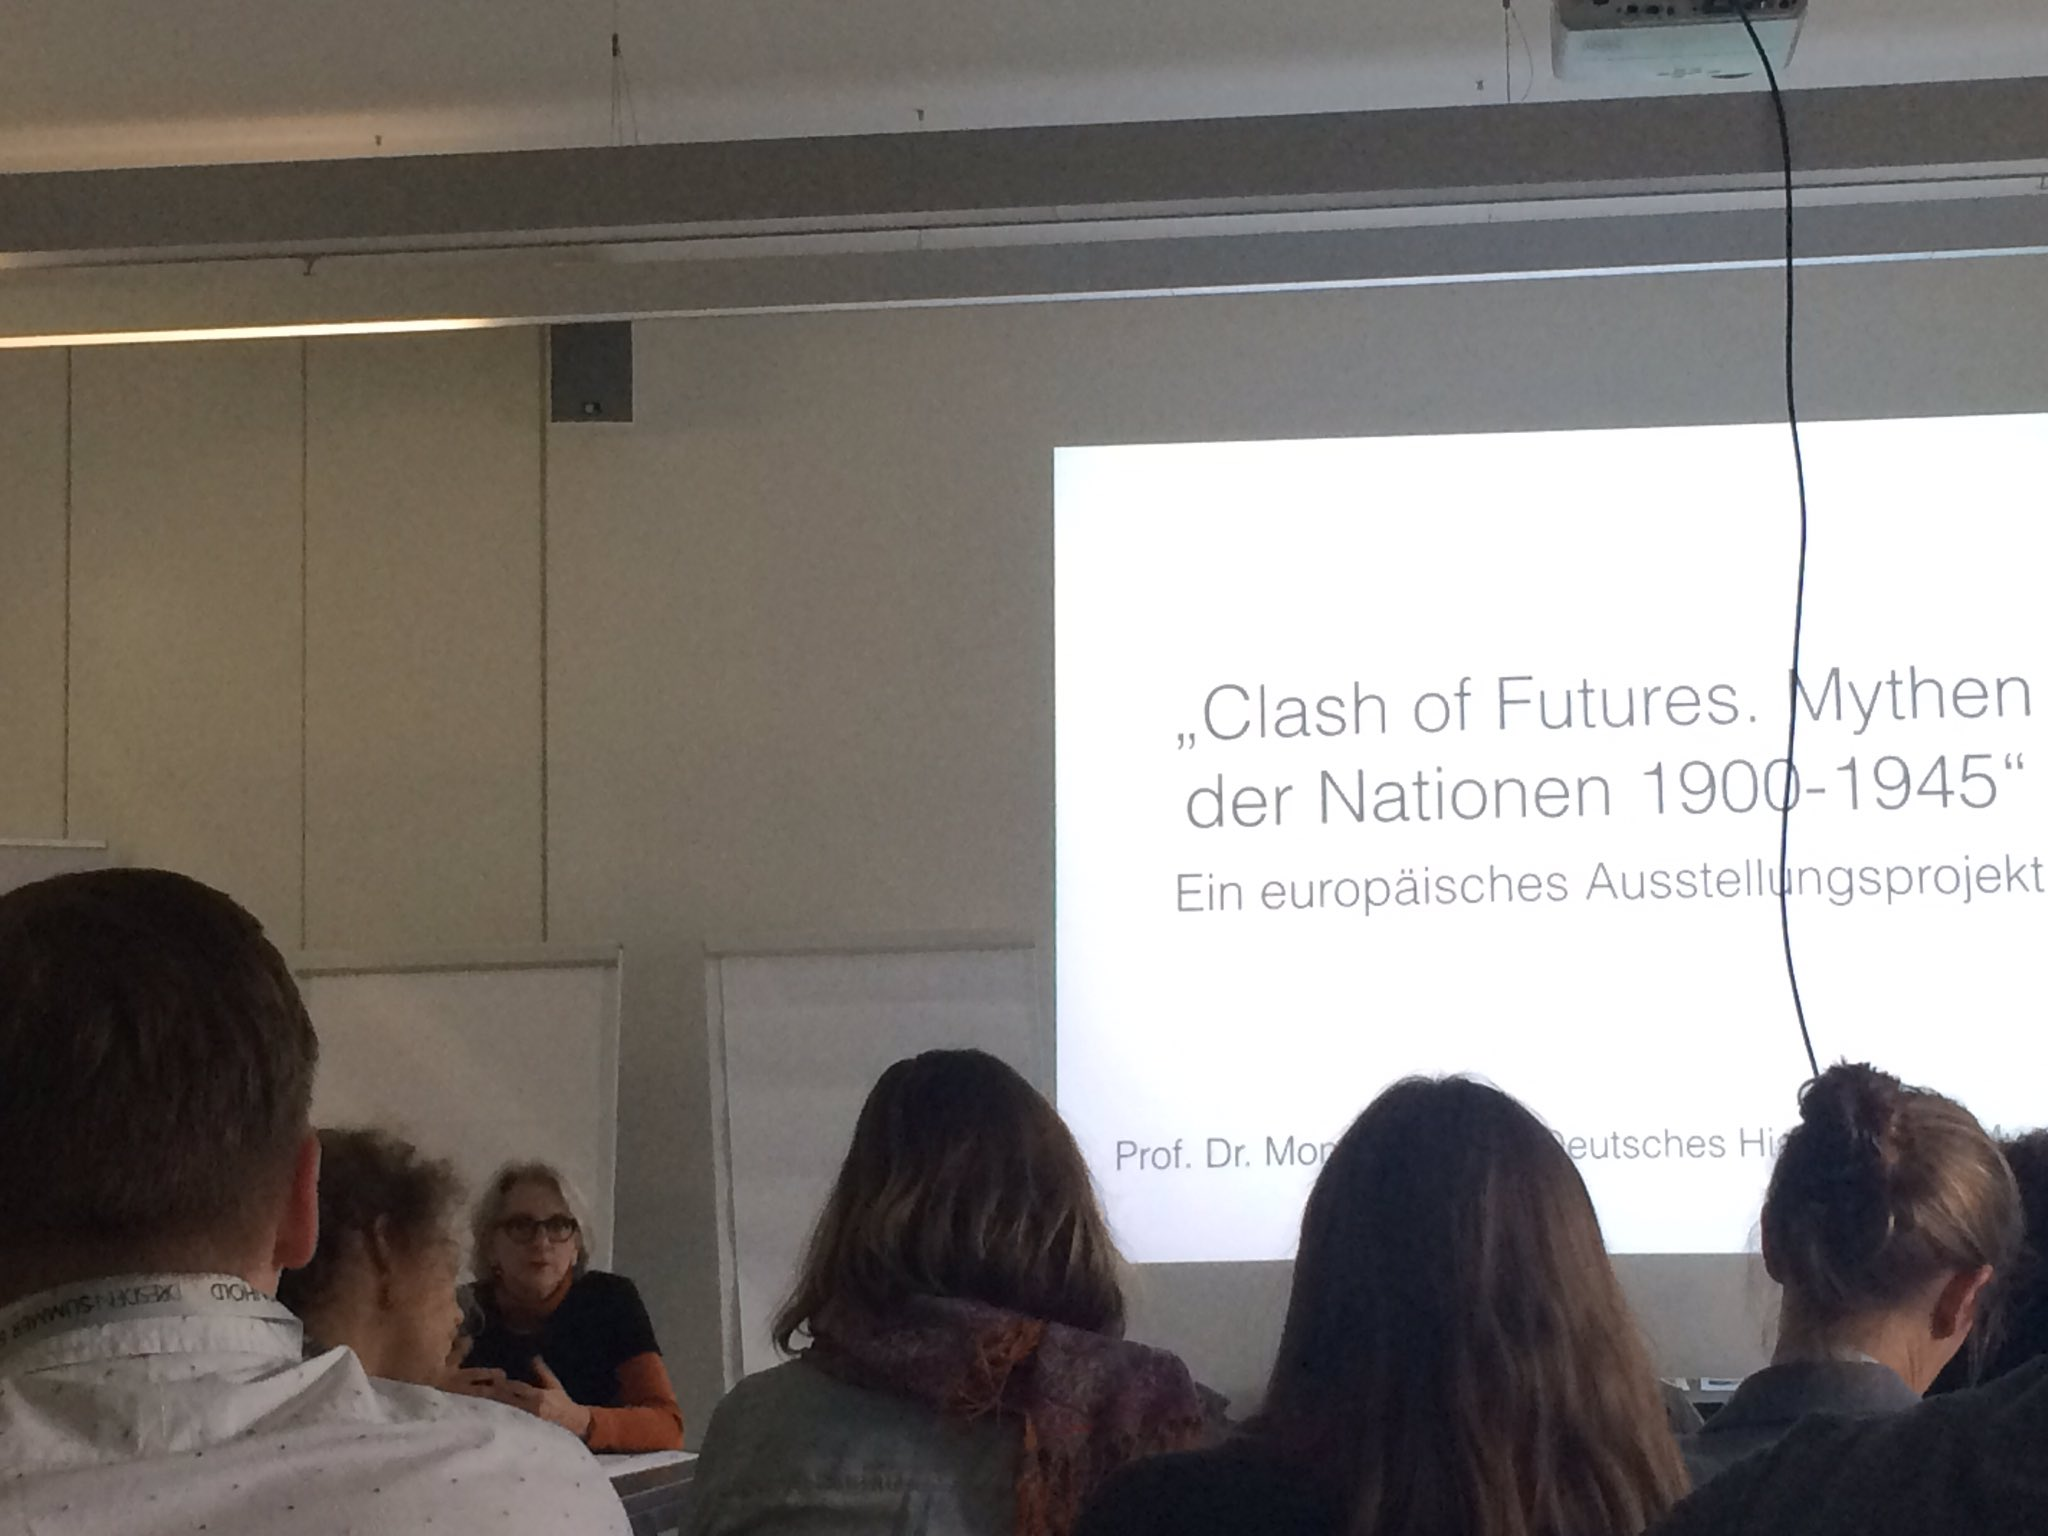 Workshop im @MHMDresden mit Monika Flacke aus dem #DHM und P. Carasco @carascopetschko: Clash of Futures - Mythen der Nationen #ddss16 https://t.co/JYeOqAT0j8